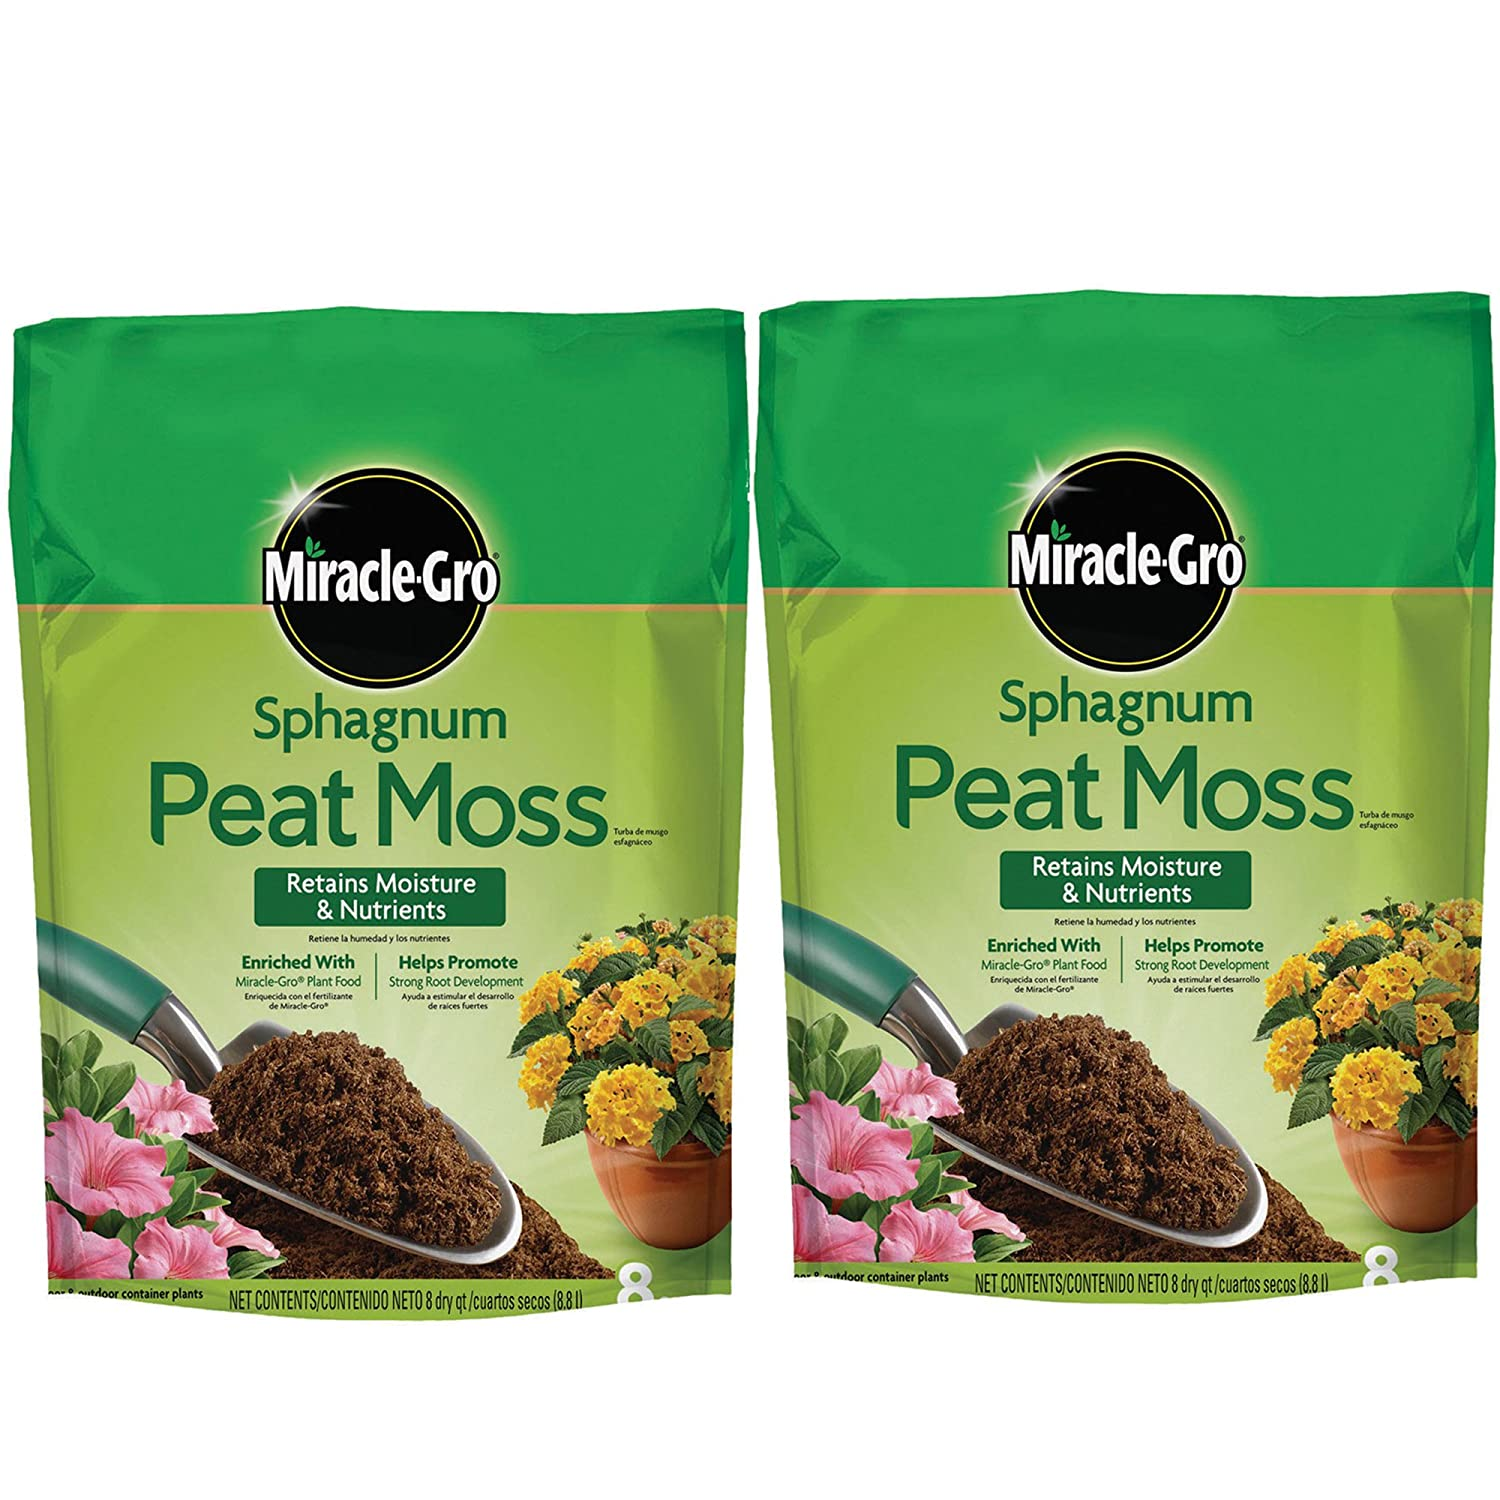 Amazon.com: Miracle-Gro Sphagnum Peat Moss, 8-Quart, 2-Pack: Garden & Outdoor